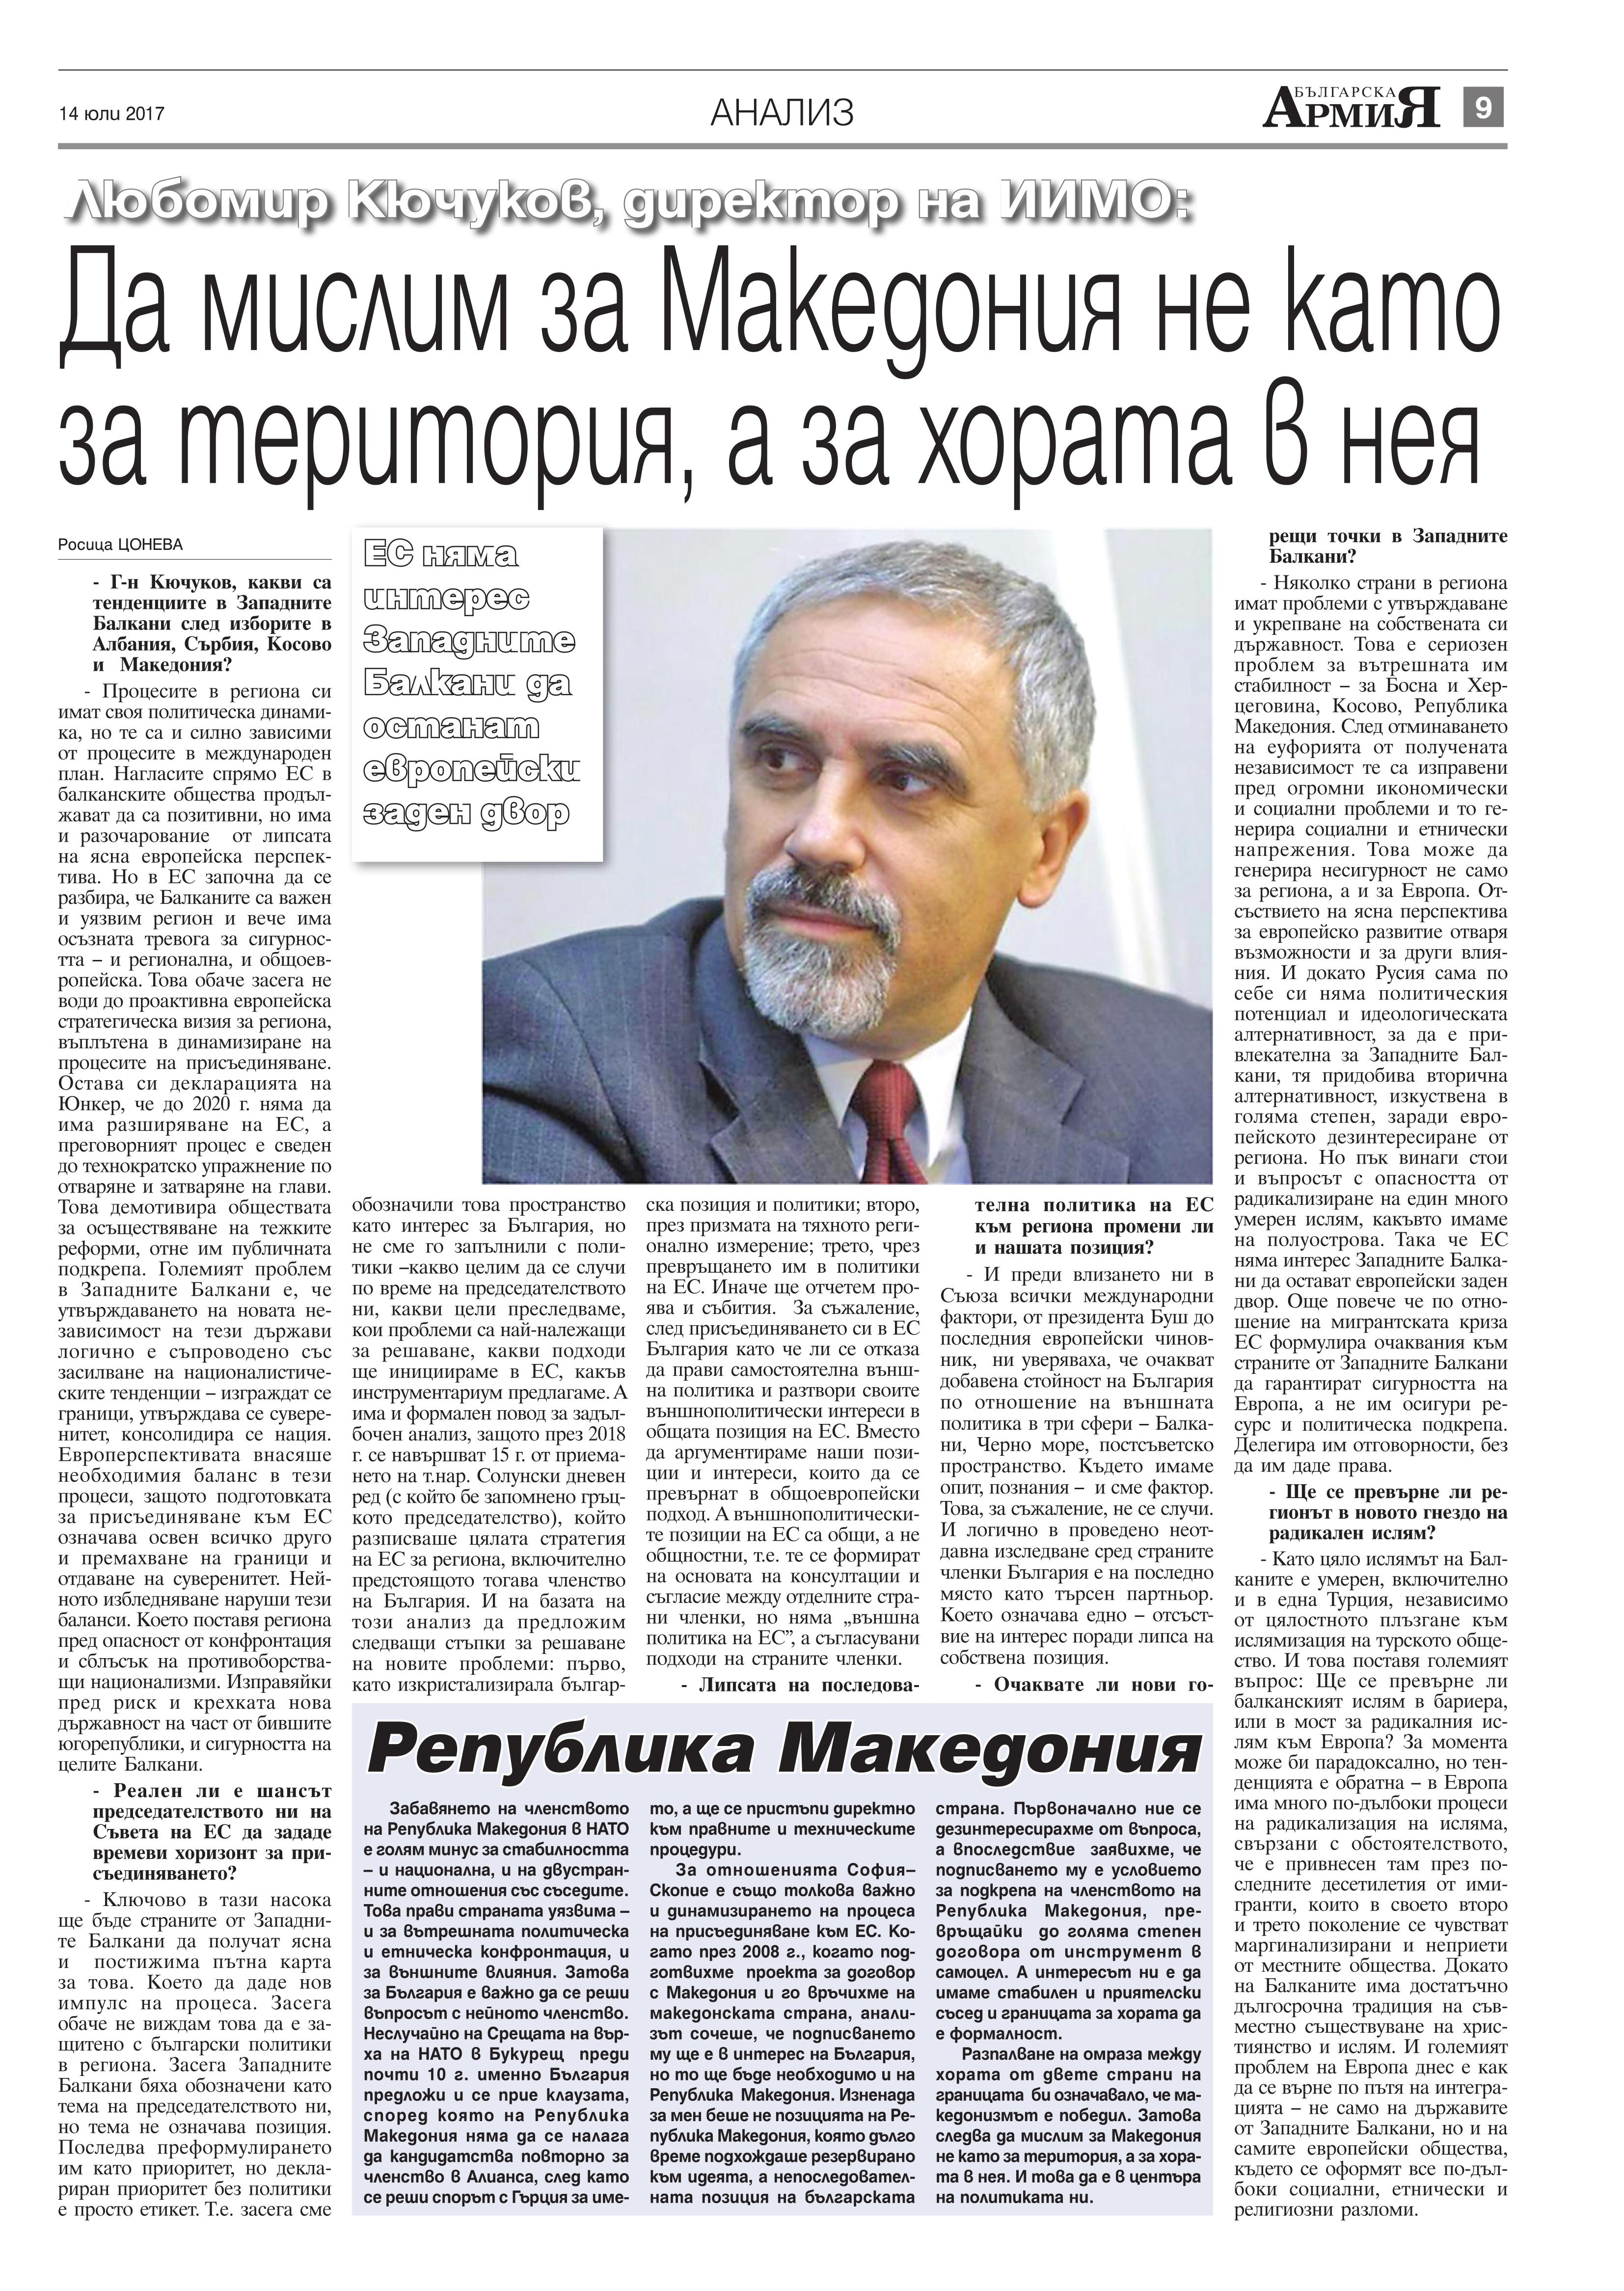 http://armymedia.bg/wp-content/uploads/2015/06/09.page1_-25.jpg